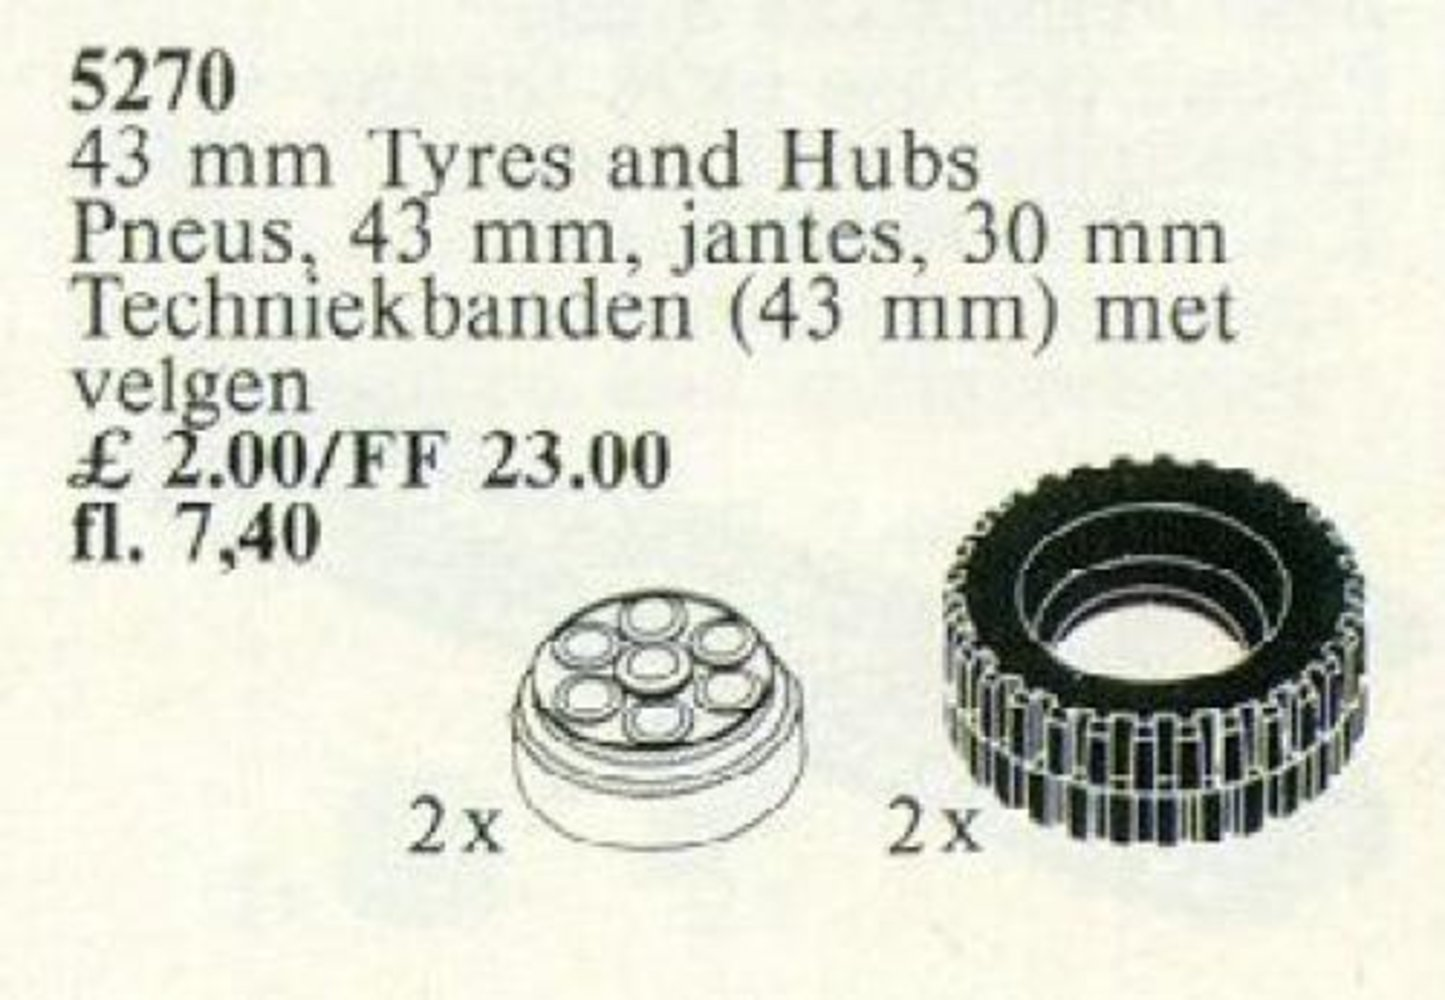 43 mm Tires and Hubs / 43 mm Tyres and Hubs